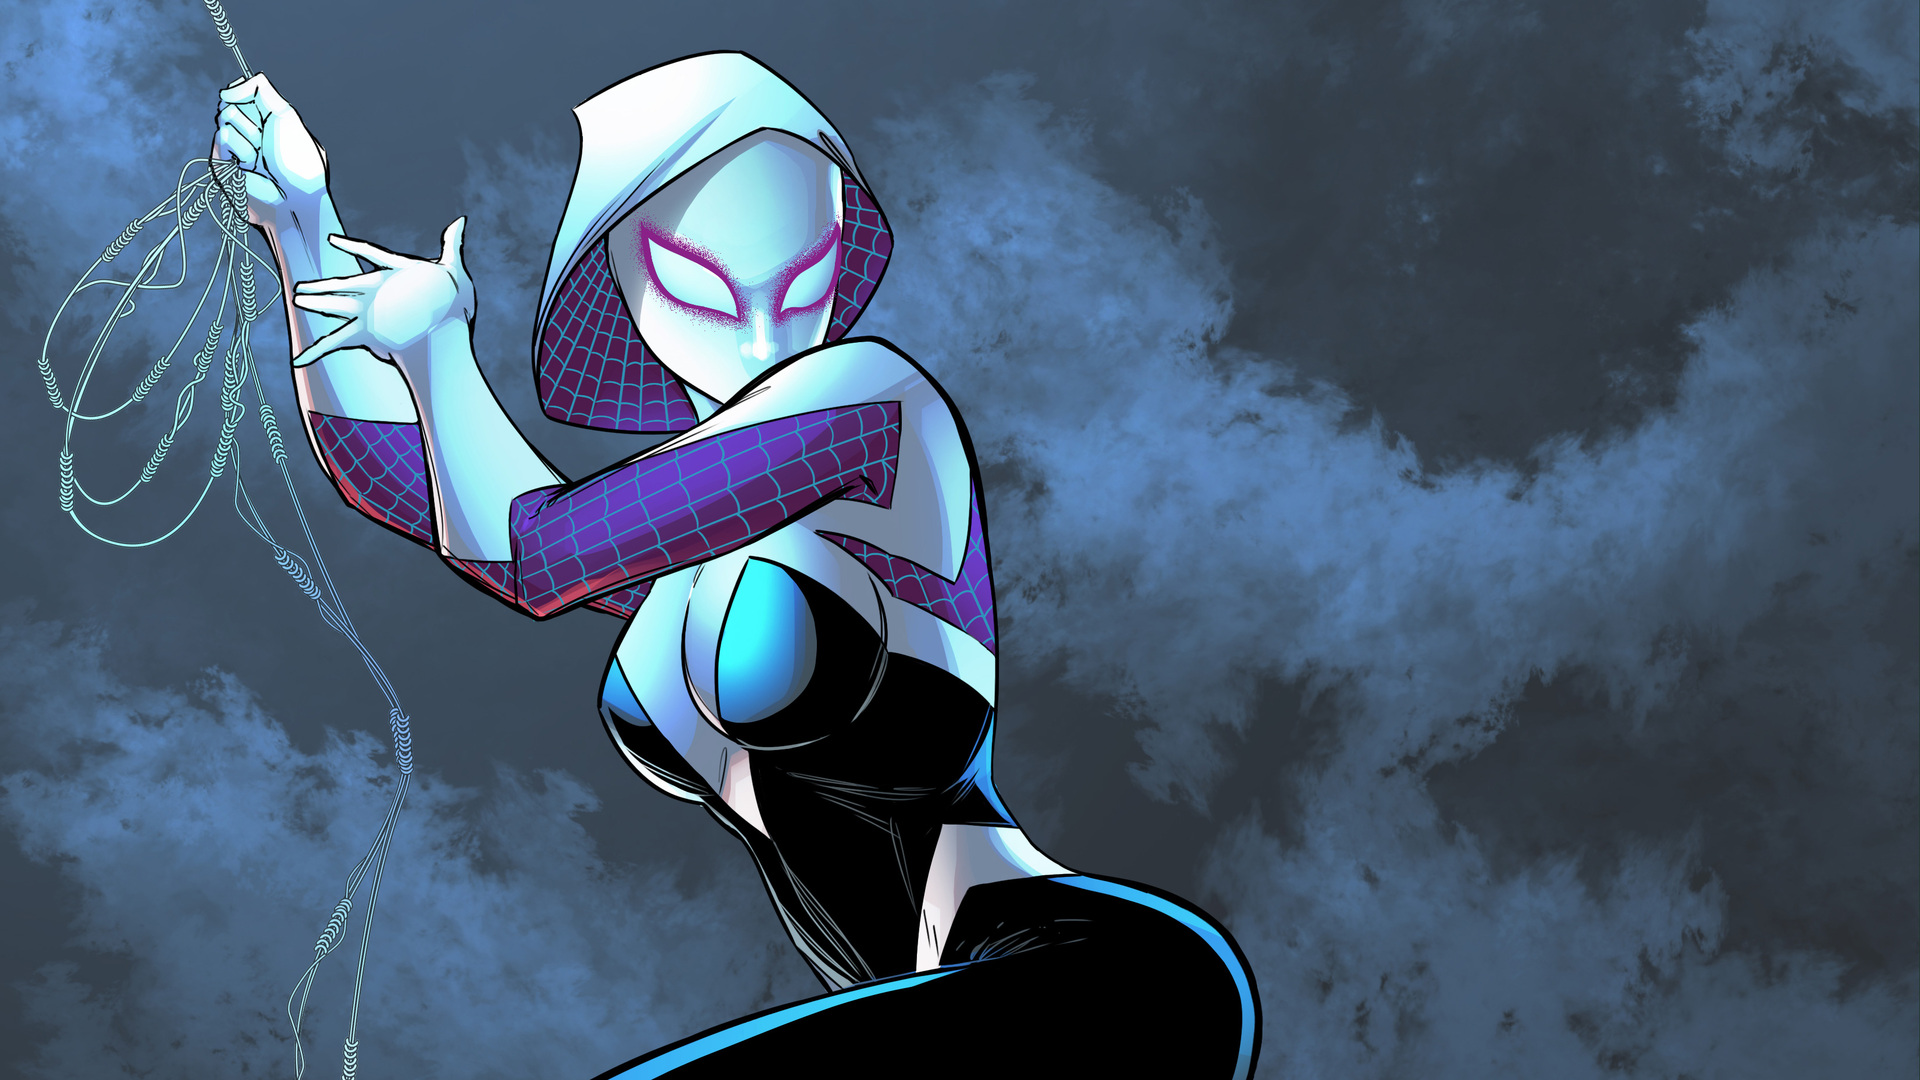 1920x1080 Gwen In Spider Man Into The Spider Verse Laptop Full Hd 1080p Hd 4k Wallpapers Images Backgrounds Photos And Pictures